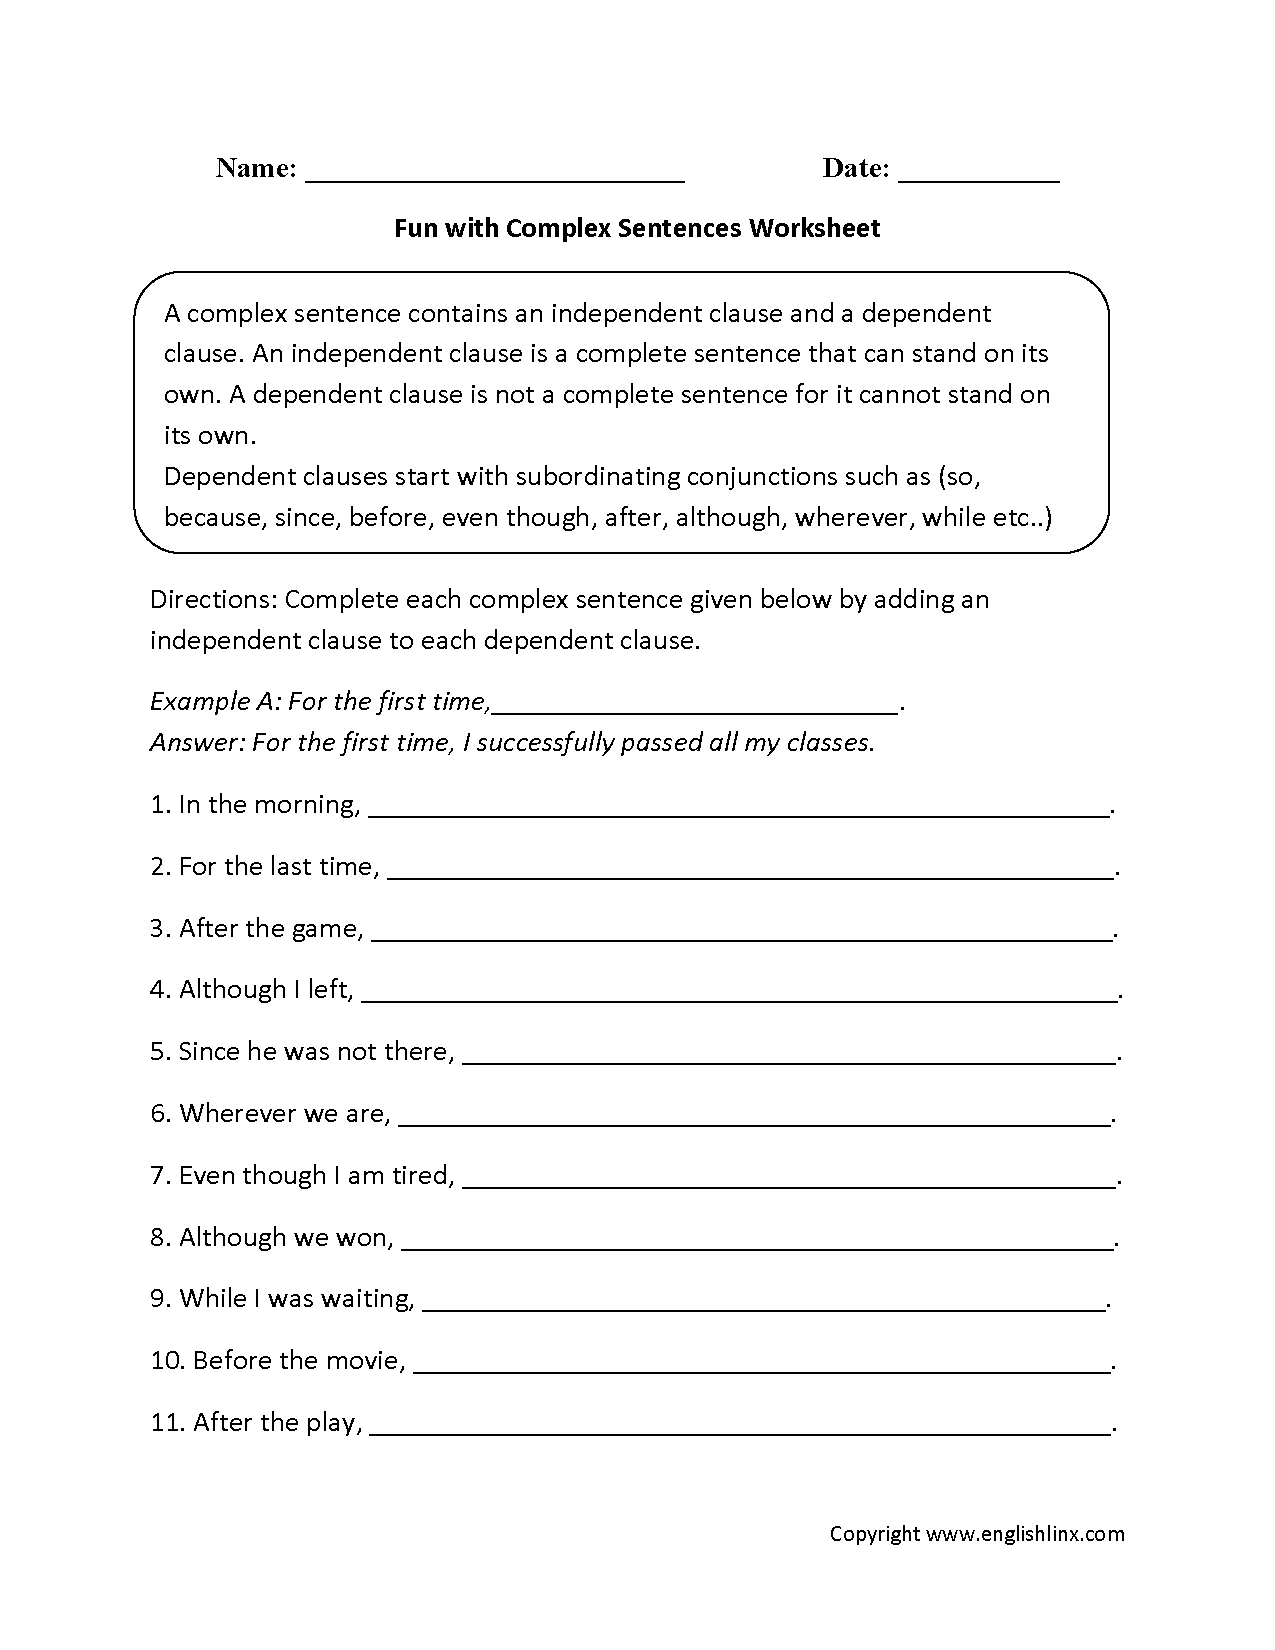 Fun With Complex Sentences Worksheet Sentence Structure